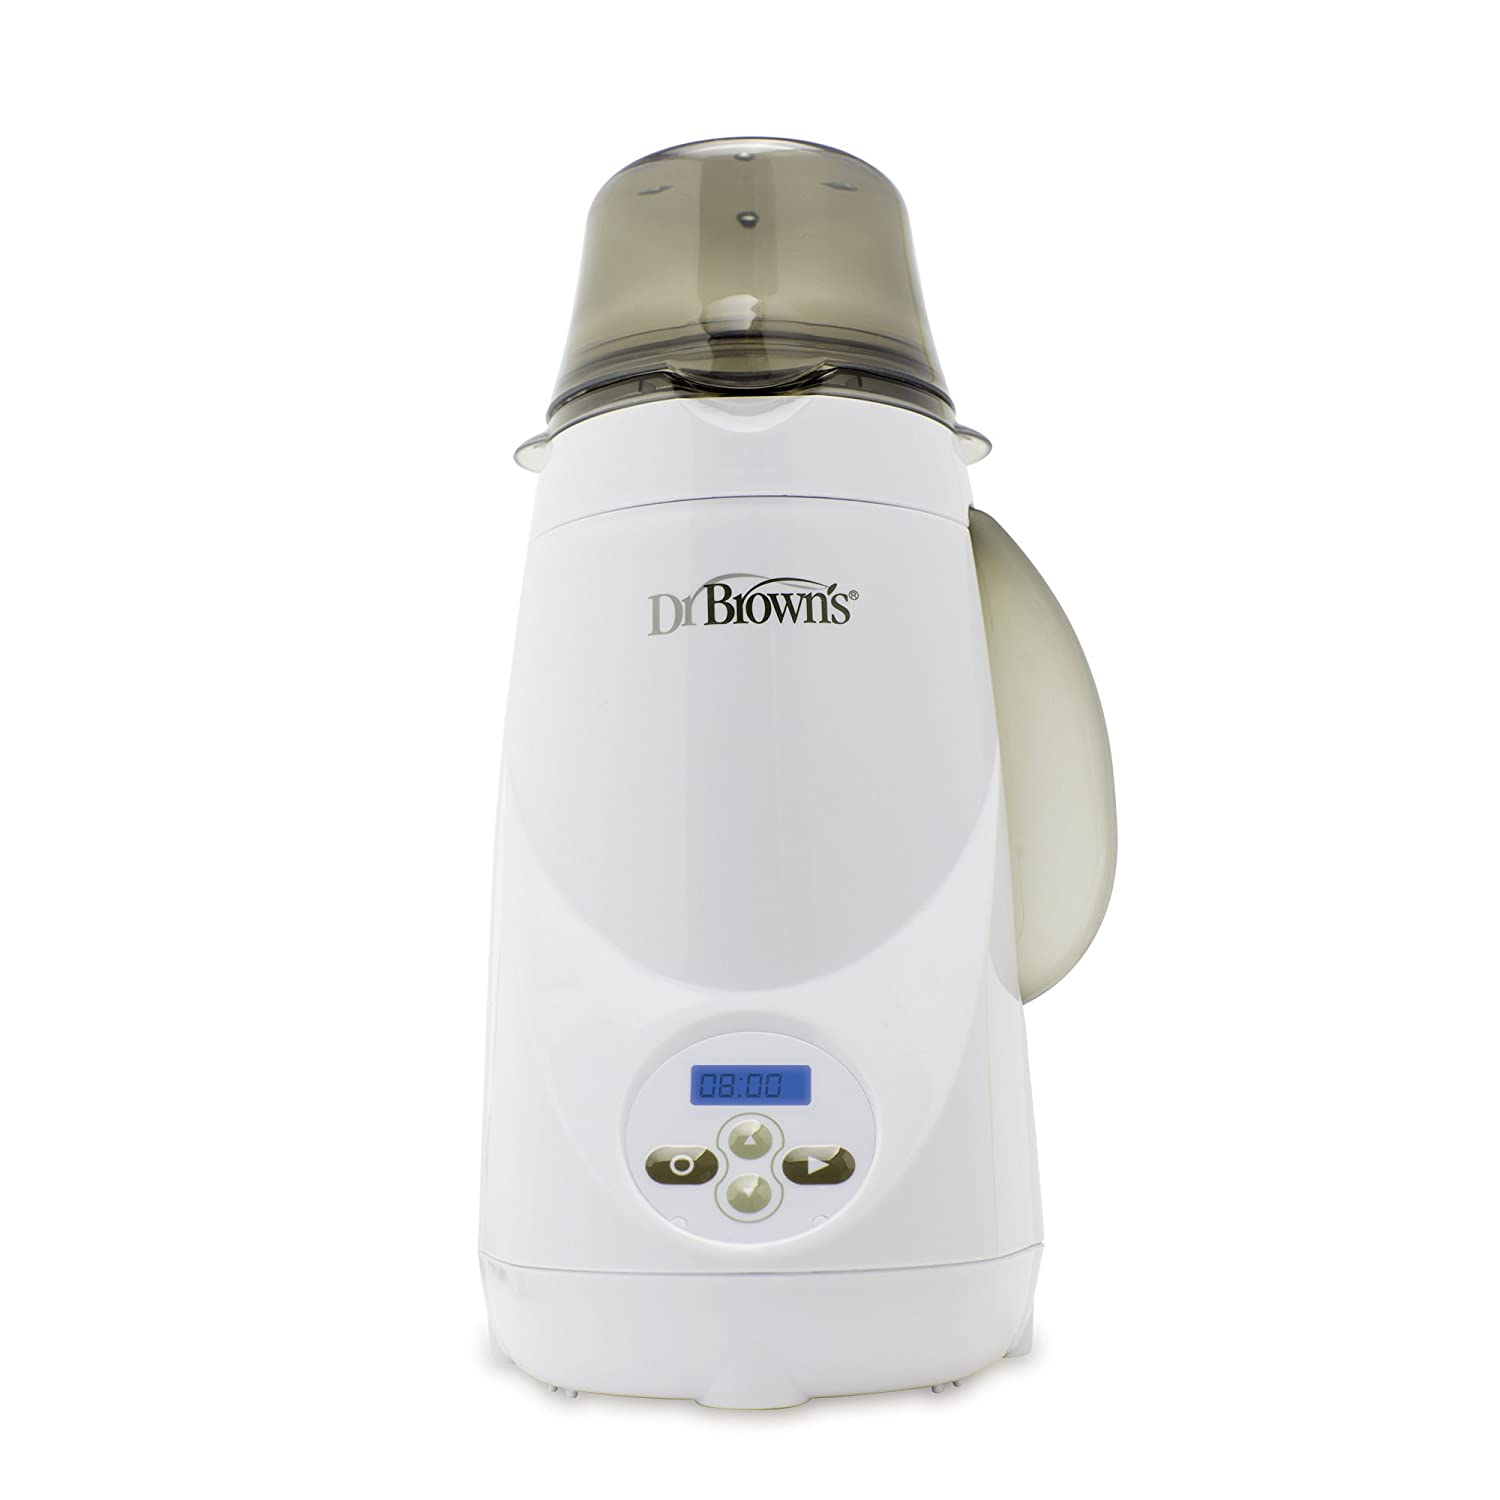 Dr. Brown's Deluxe Baby Bottle Warmer Dr. Brown' s 850T